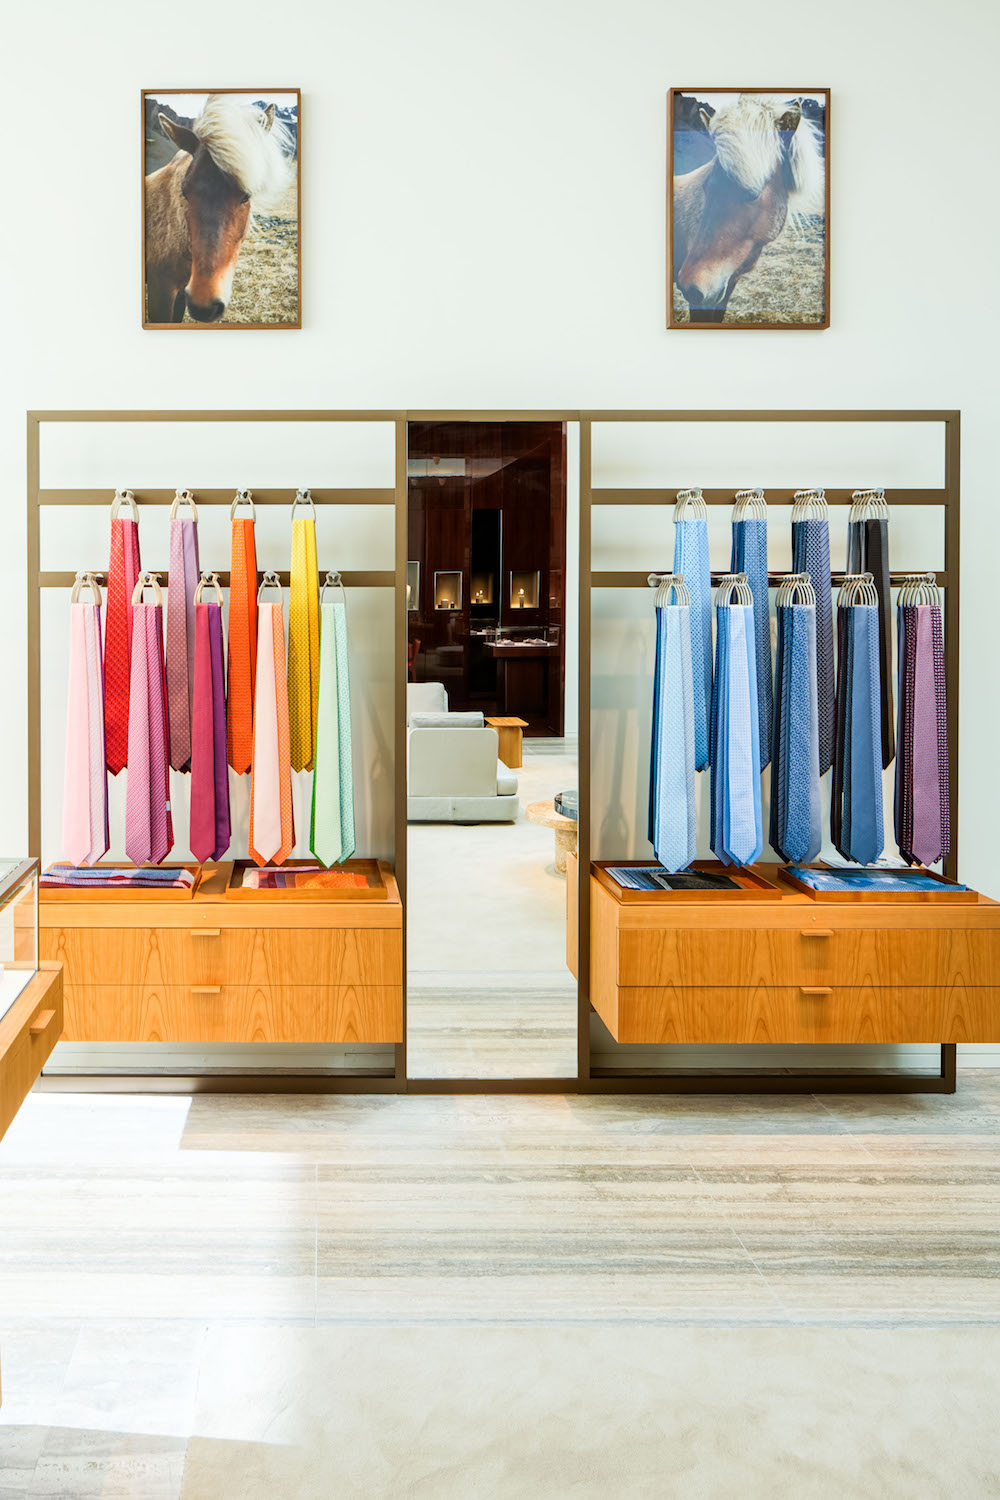 Ties on display in the new boutique